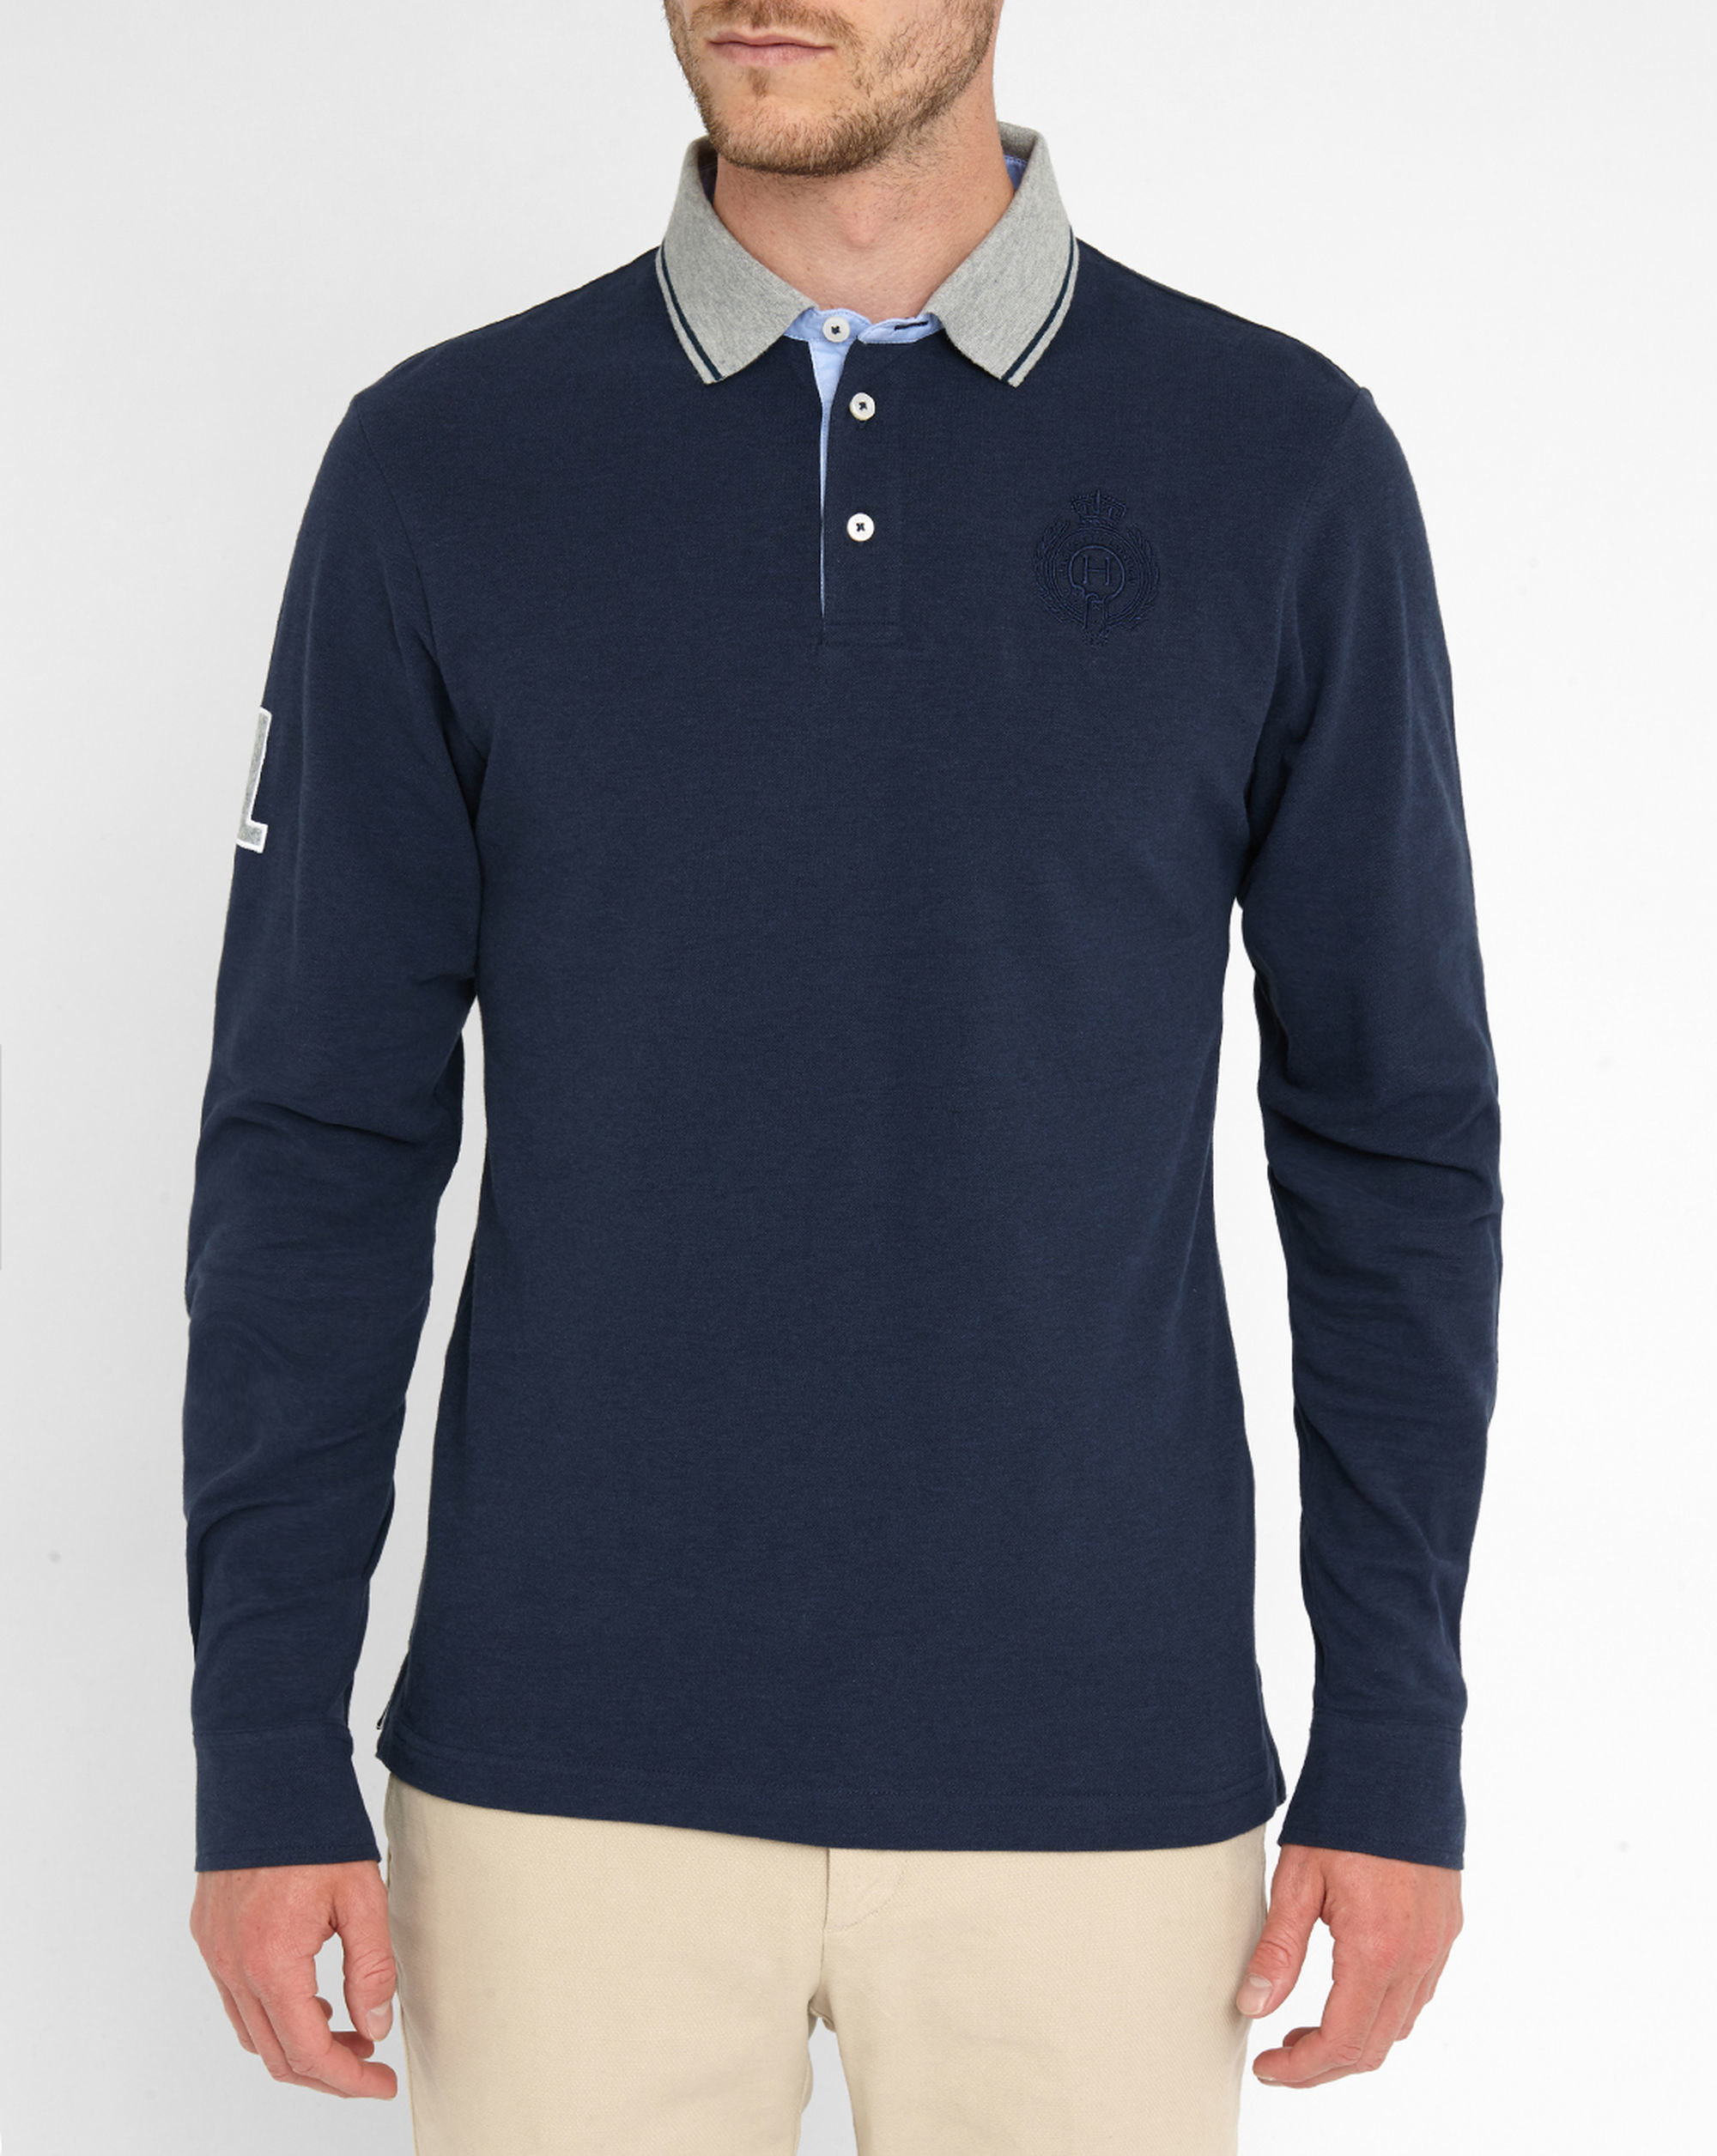 Hackett navy embroidered logo elbow patch ls polo shirt in